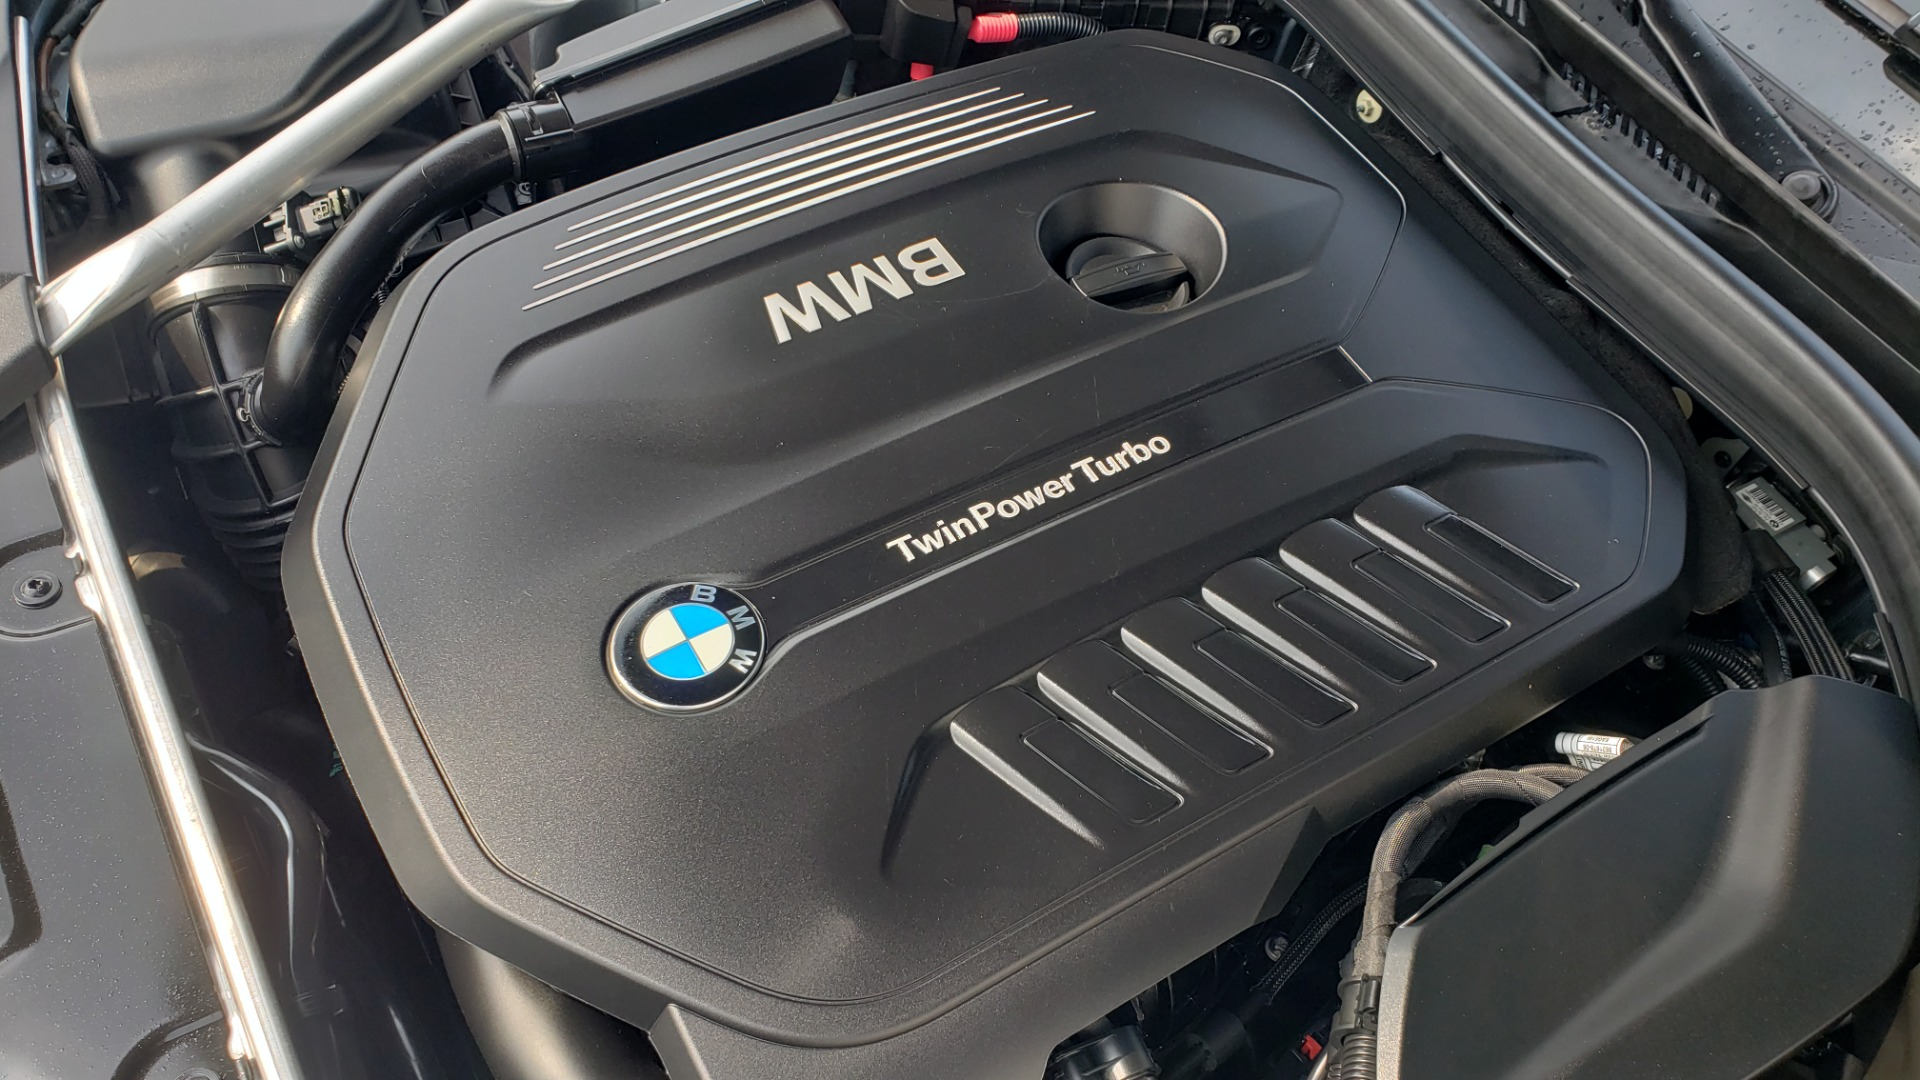 Used 2018 BMW 5 SERIES 540I XDRIVE PREMIUM / EXECUTIVE / LUXURY / H/K SND / REMOTE CONTROL PARKING for sale $40,995 at Formula Imports in Charlotte NC 28227 14